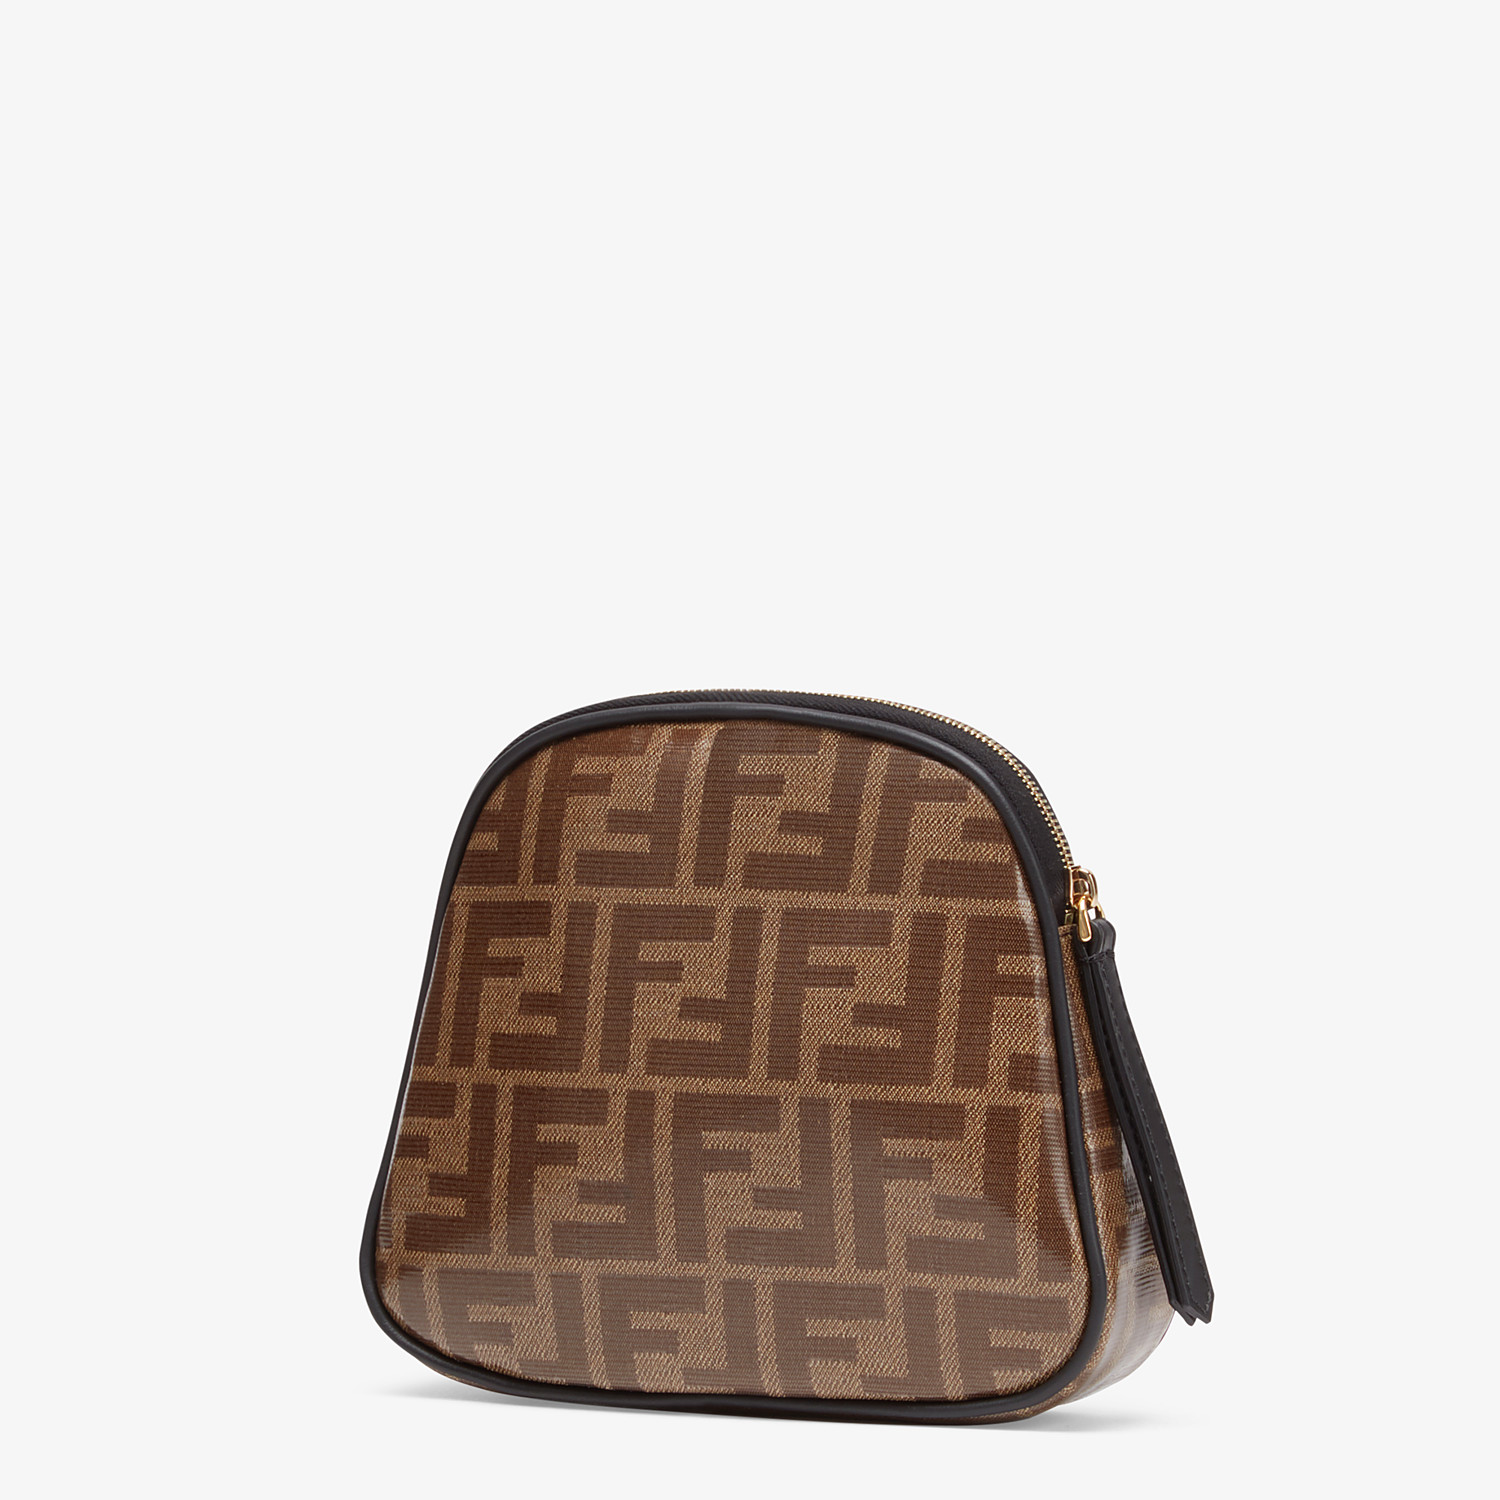 FENDI TOILETRY CASE MEDIUM - Brown fabric toiletry case - view 2 detail